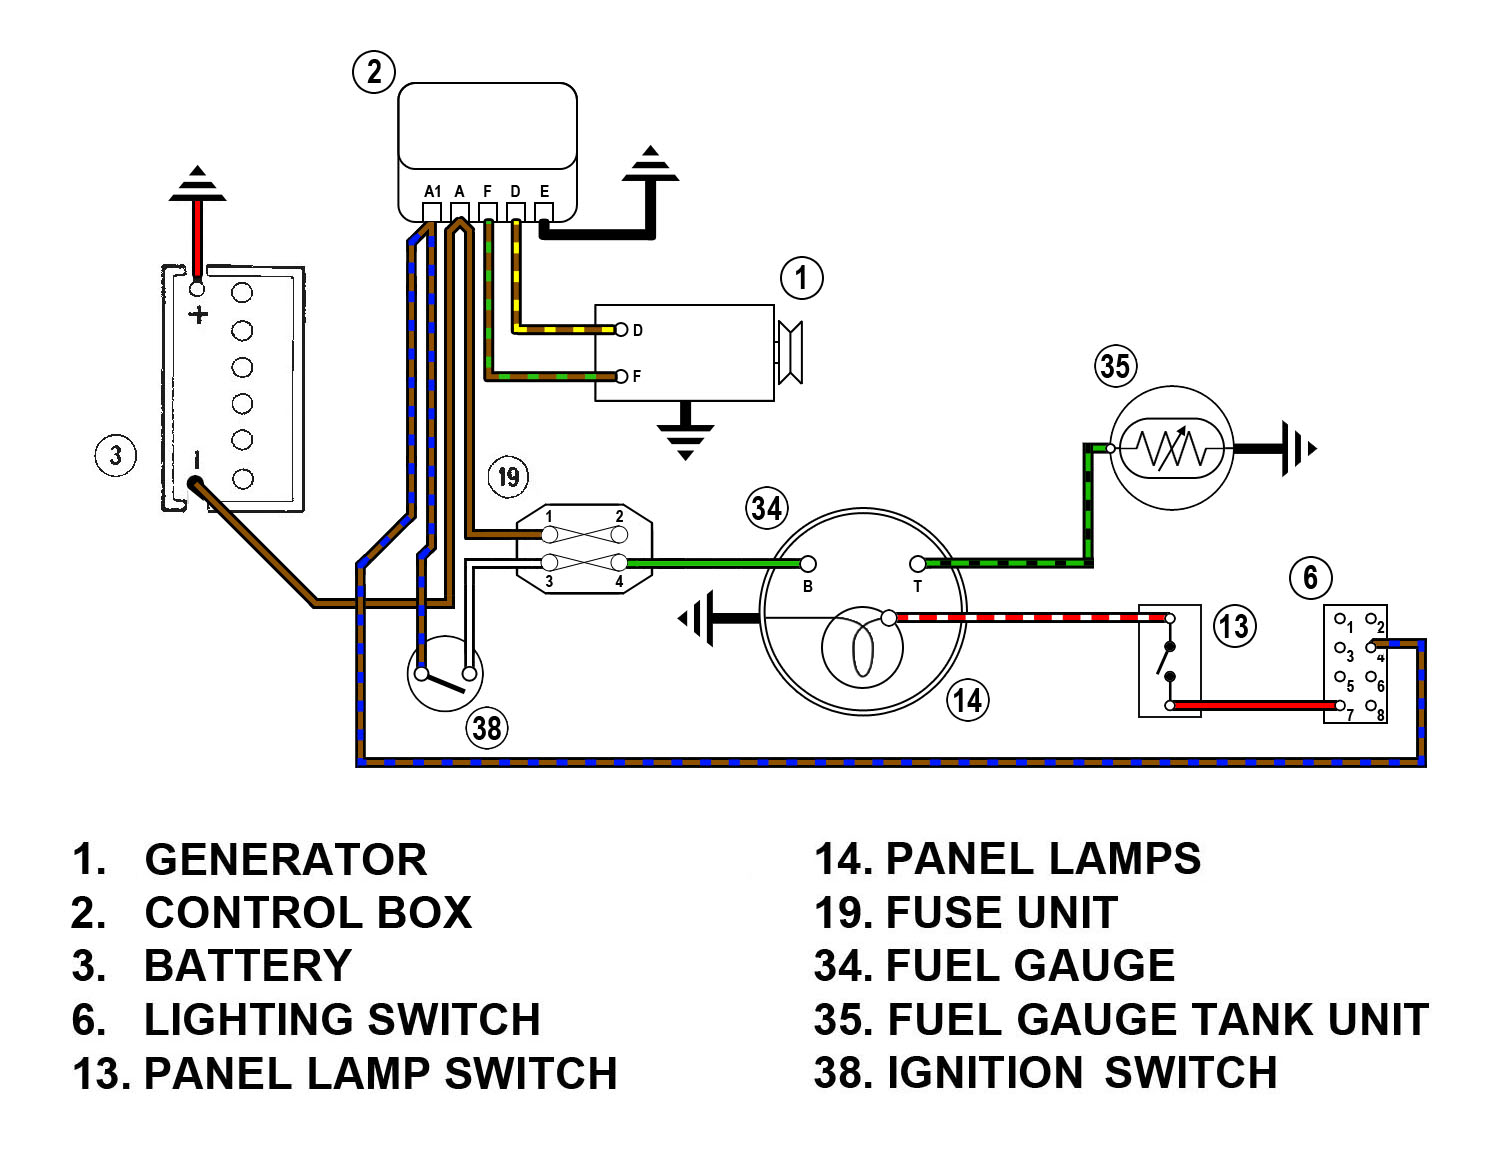 FuelGaugeWiringSpMkII_MGMkI spridgetguru com tech index fuel gauge wiring diagram teleflex fuel gauge wiring diagram at gsmx.co